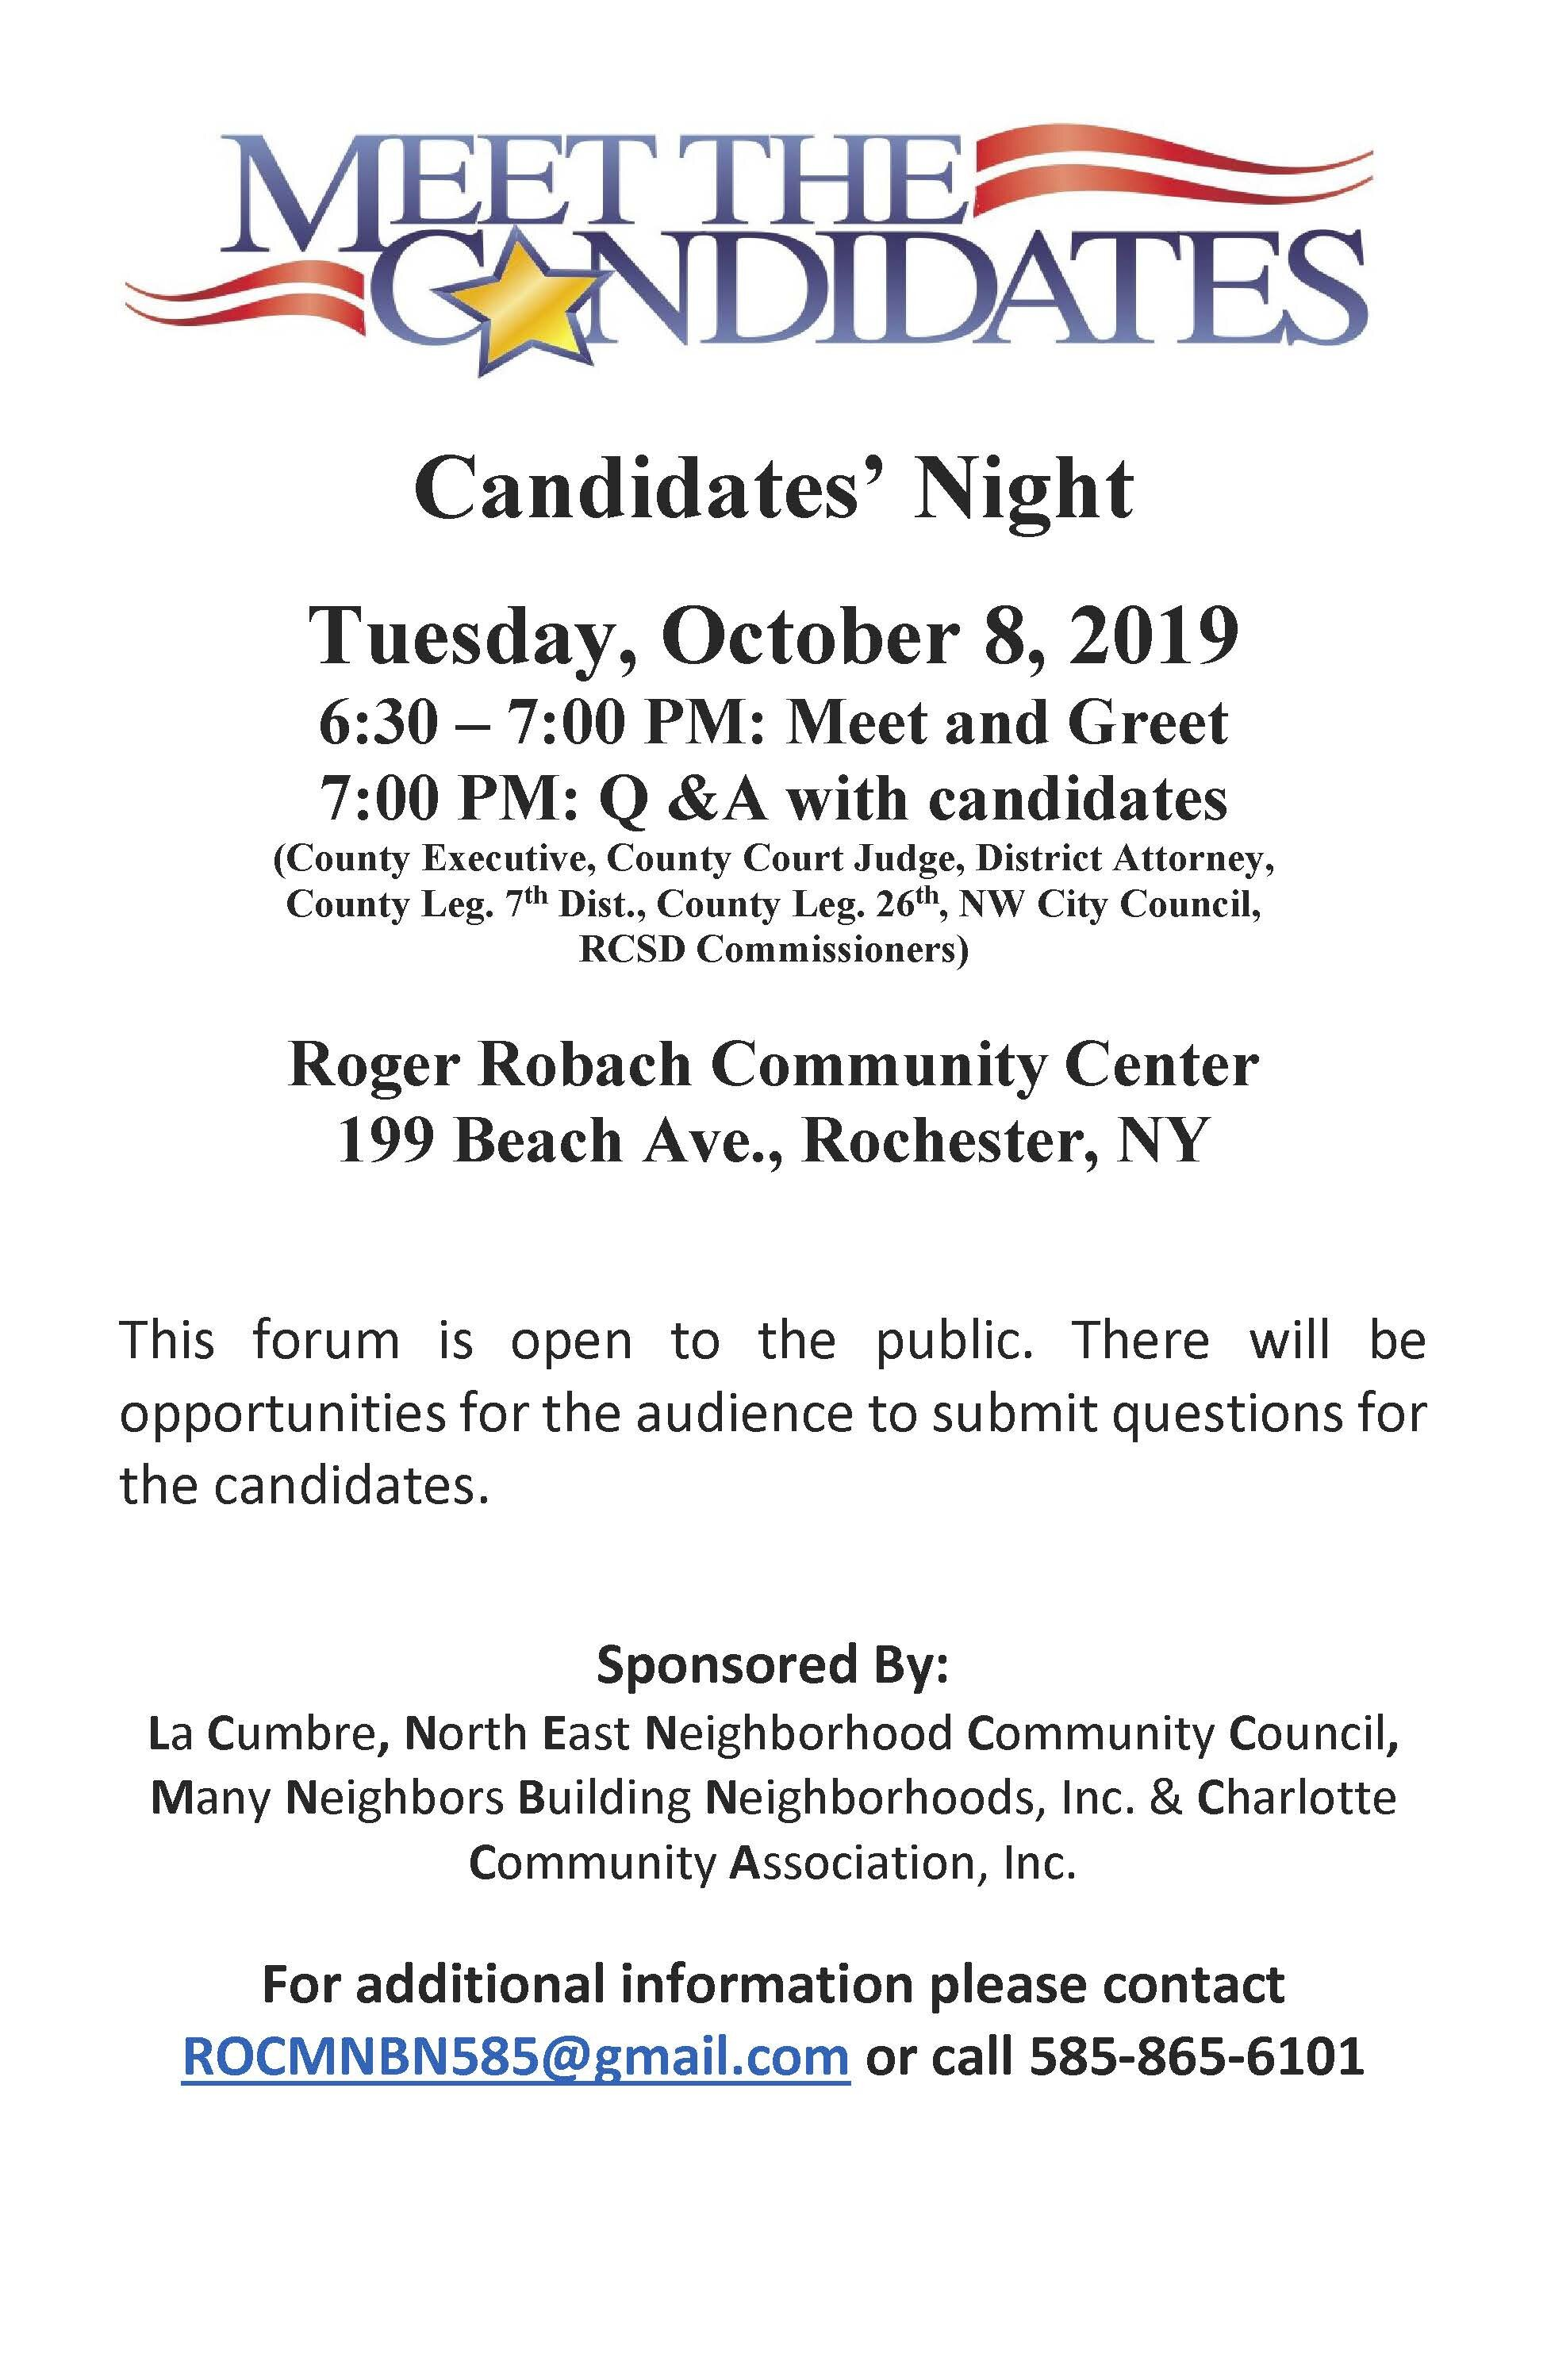 2019 Flyer for Rochester City Council Candidates 9.10.19.jpg